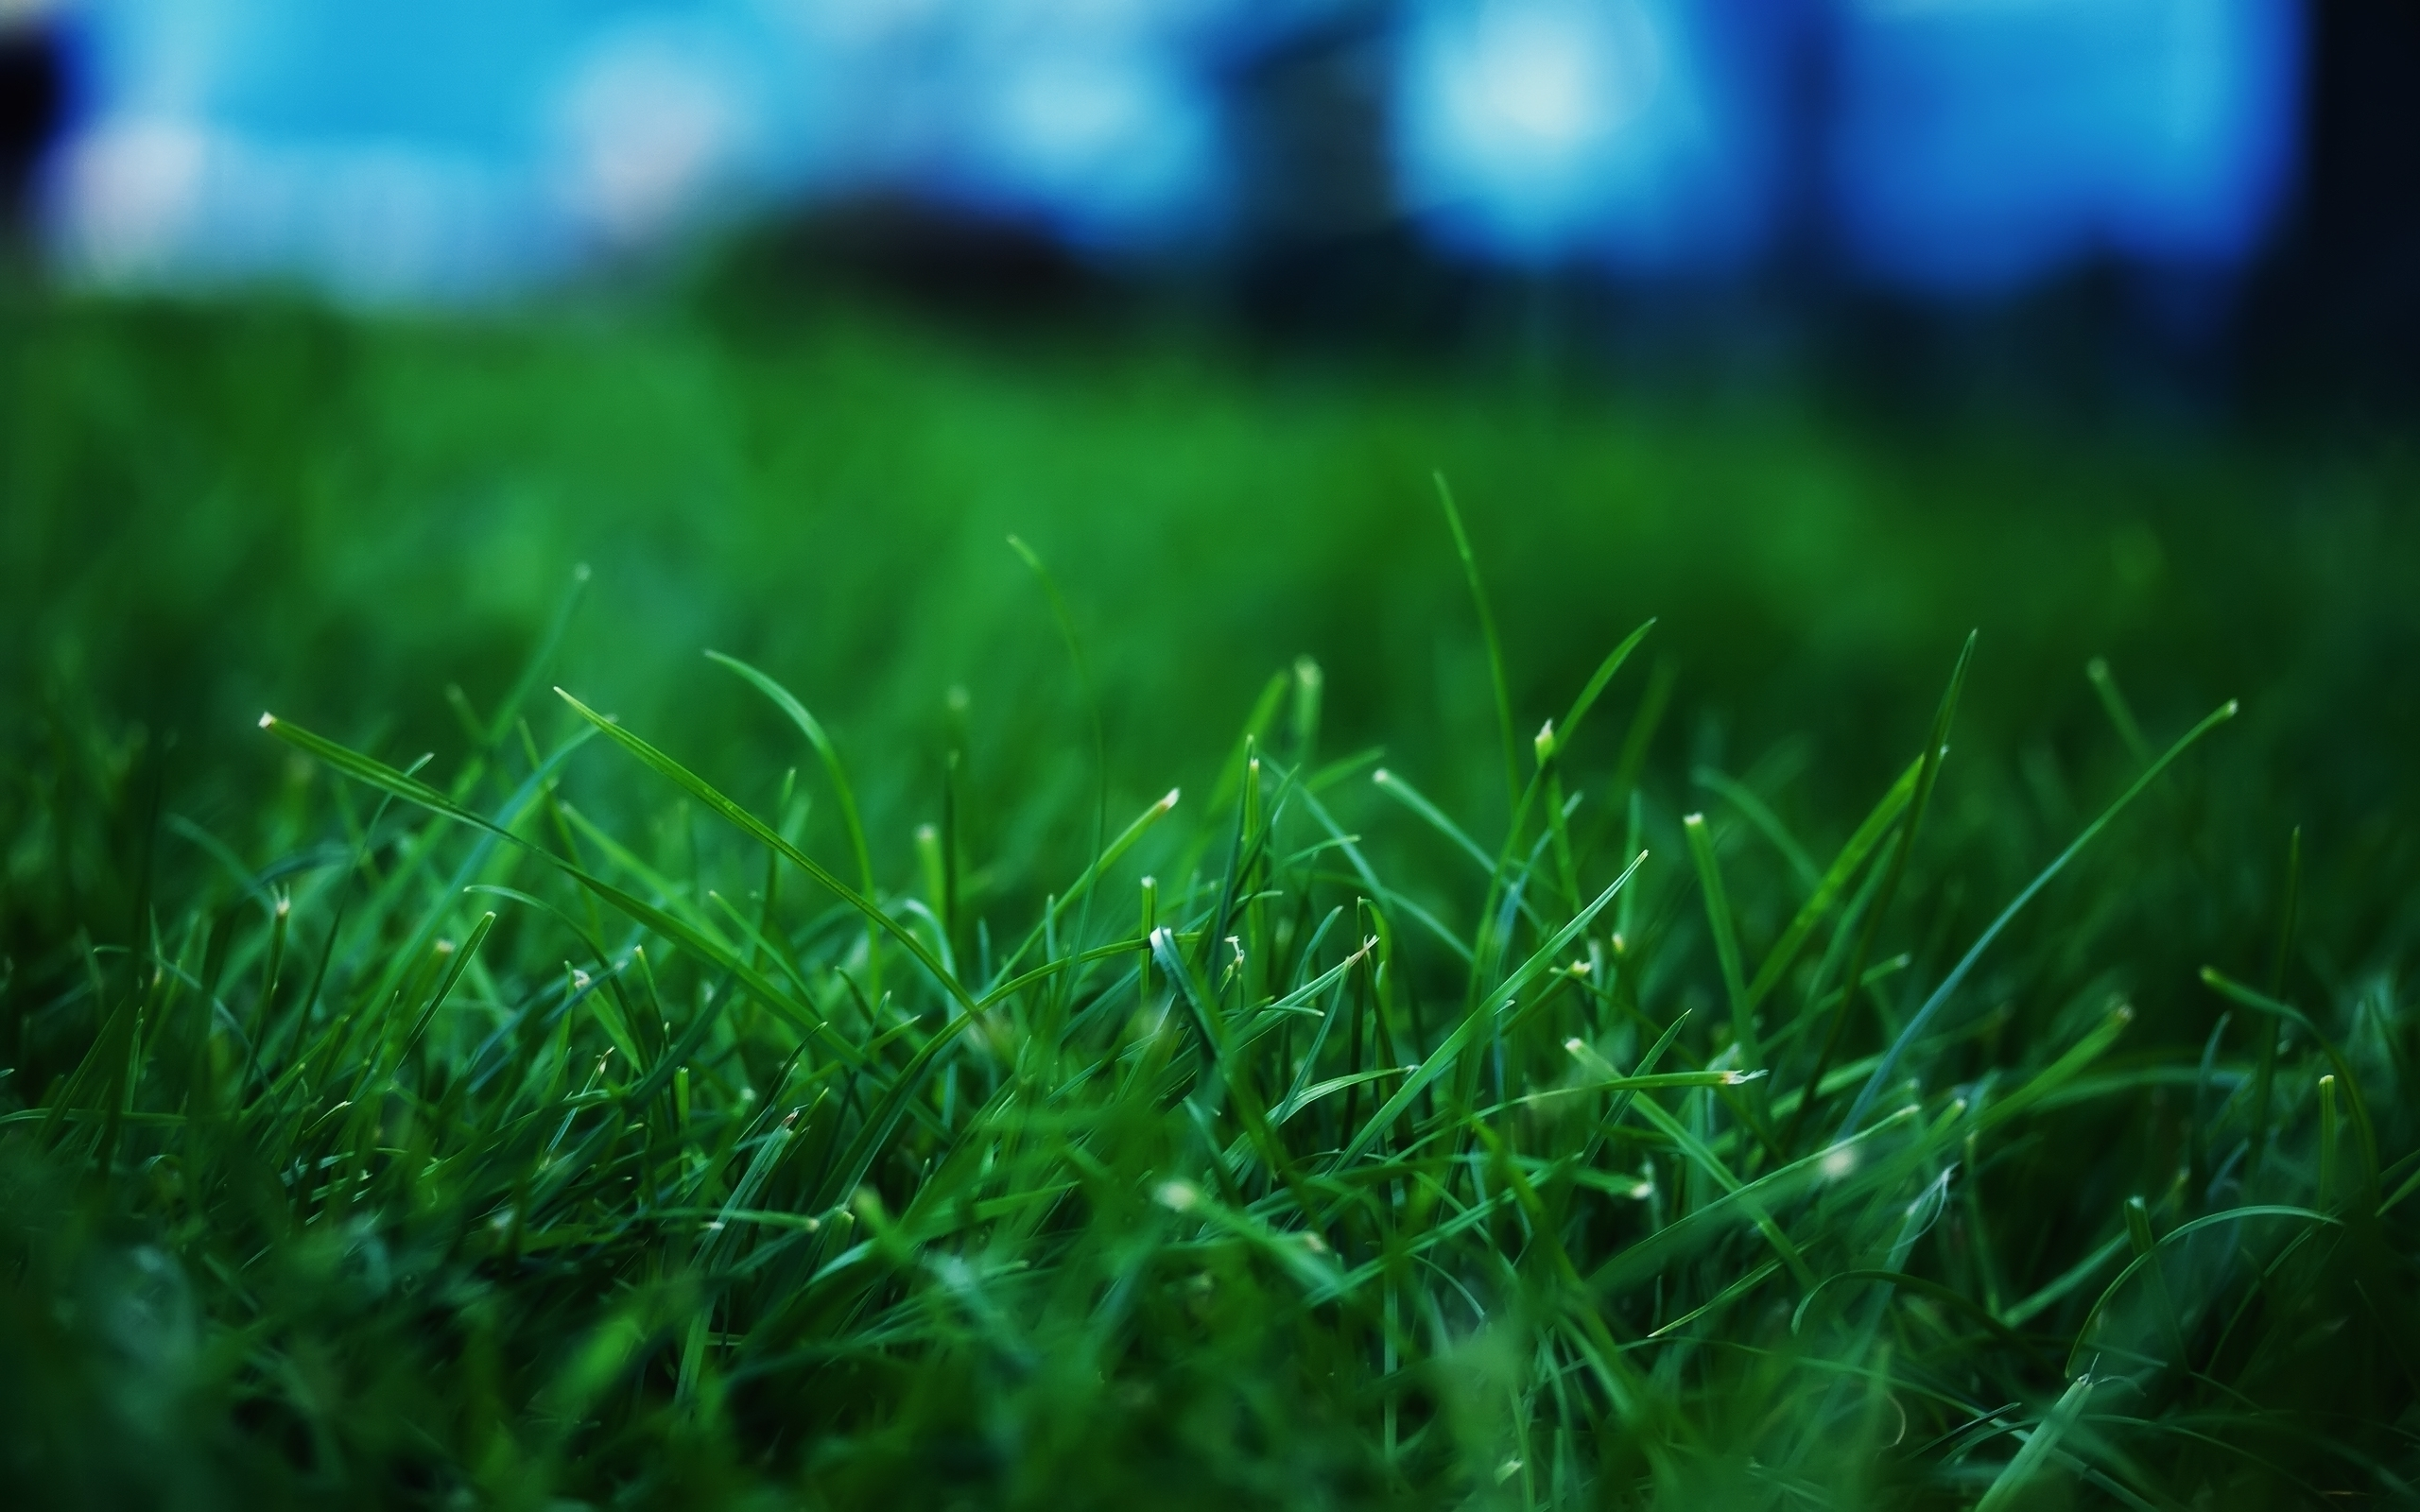 Grass Background Images  Pixabay  Download Free Pictures